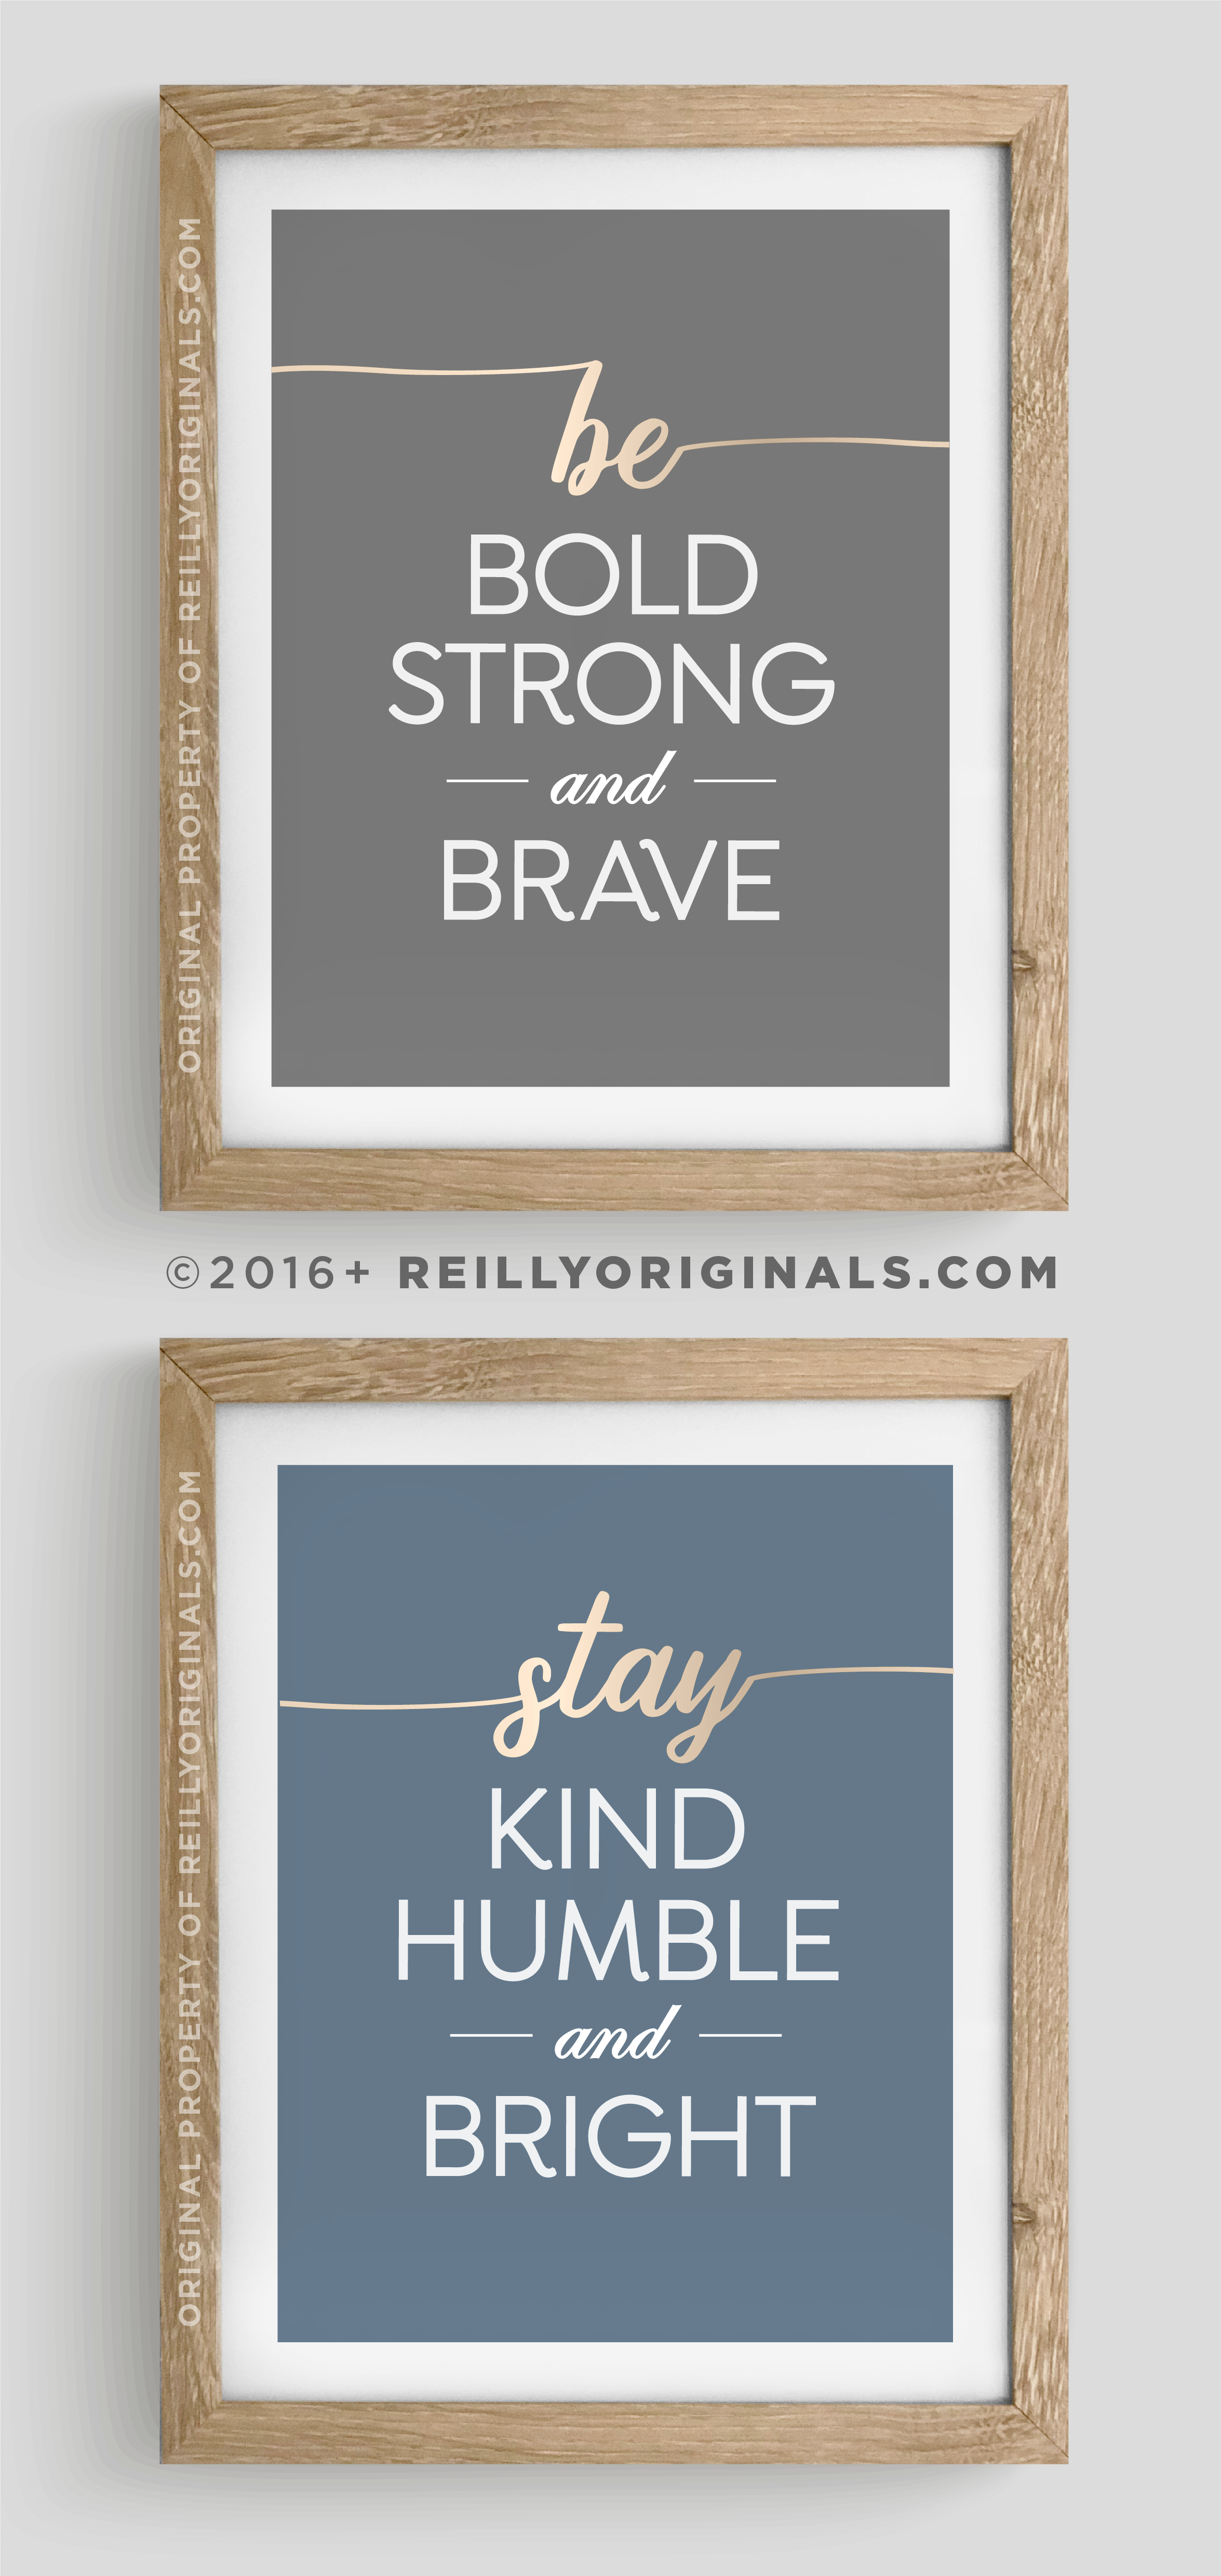 3 Home Decor Trends For Spring Brittany Stager: Be Bold Strong Brave, Stay Kind Humble Bright. Home Decor